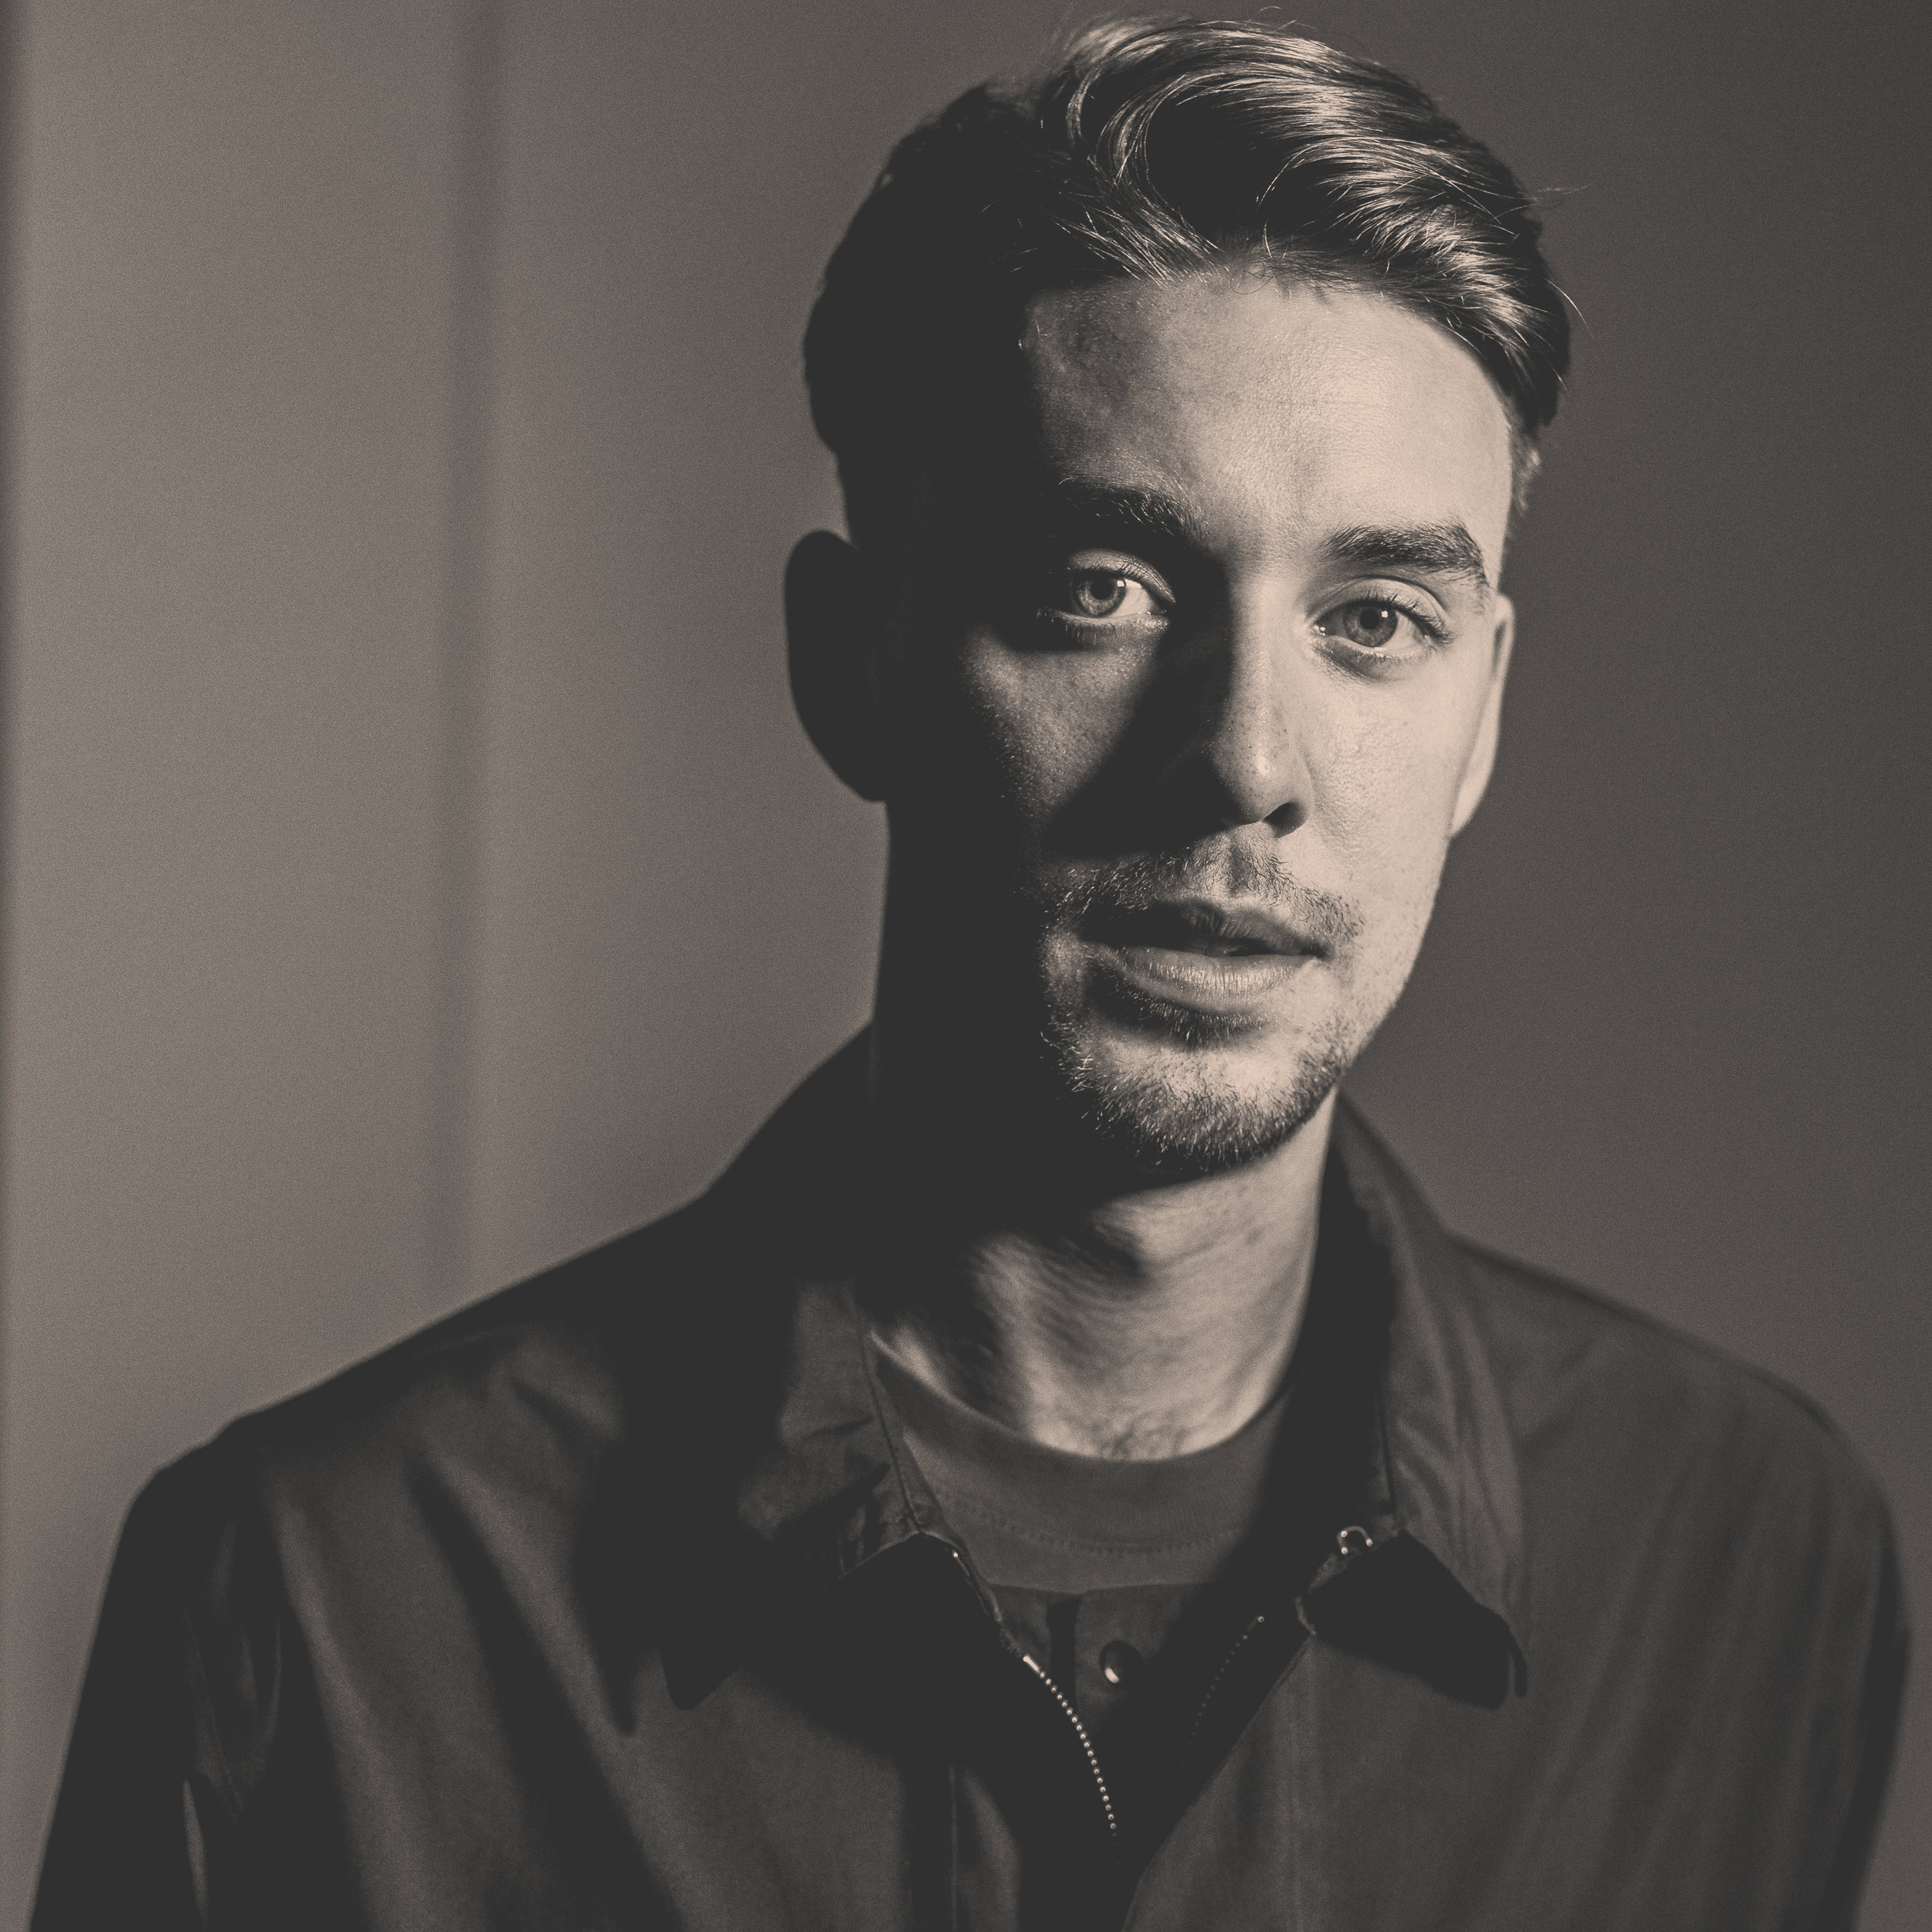 Jasper James - Emerging from his roots as a leading tastemaker in Glasgow's vibrant house scene, Collective Minds booked Jasper James to helm the decks in Hong Kong.